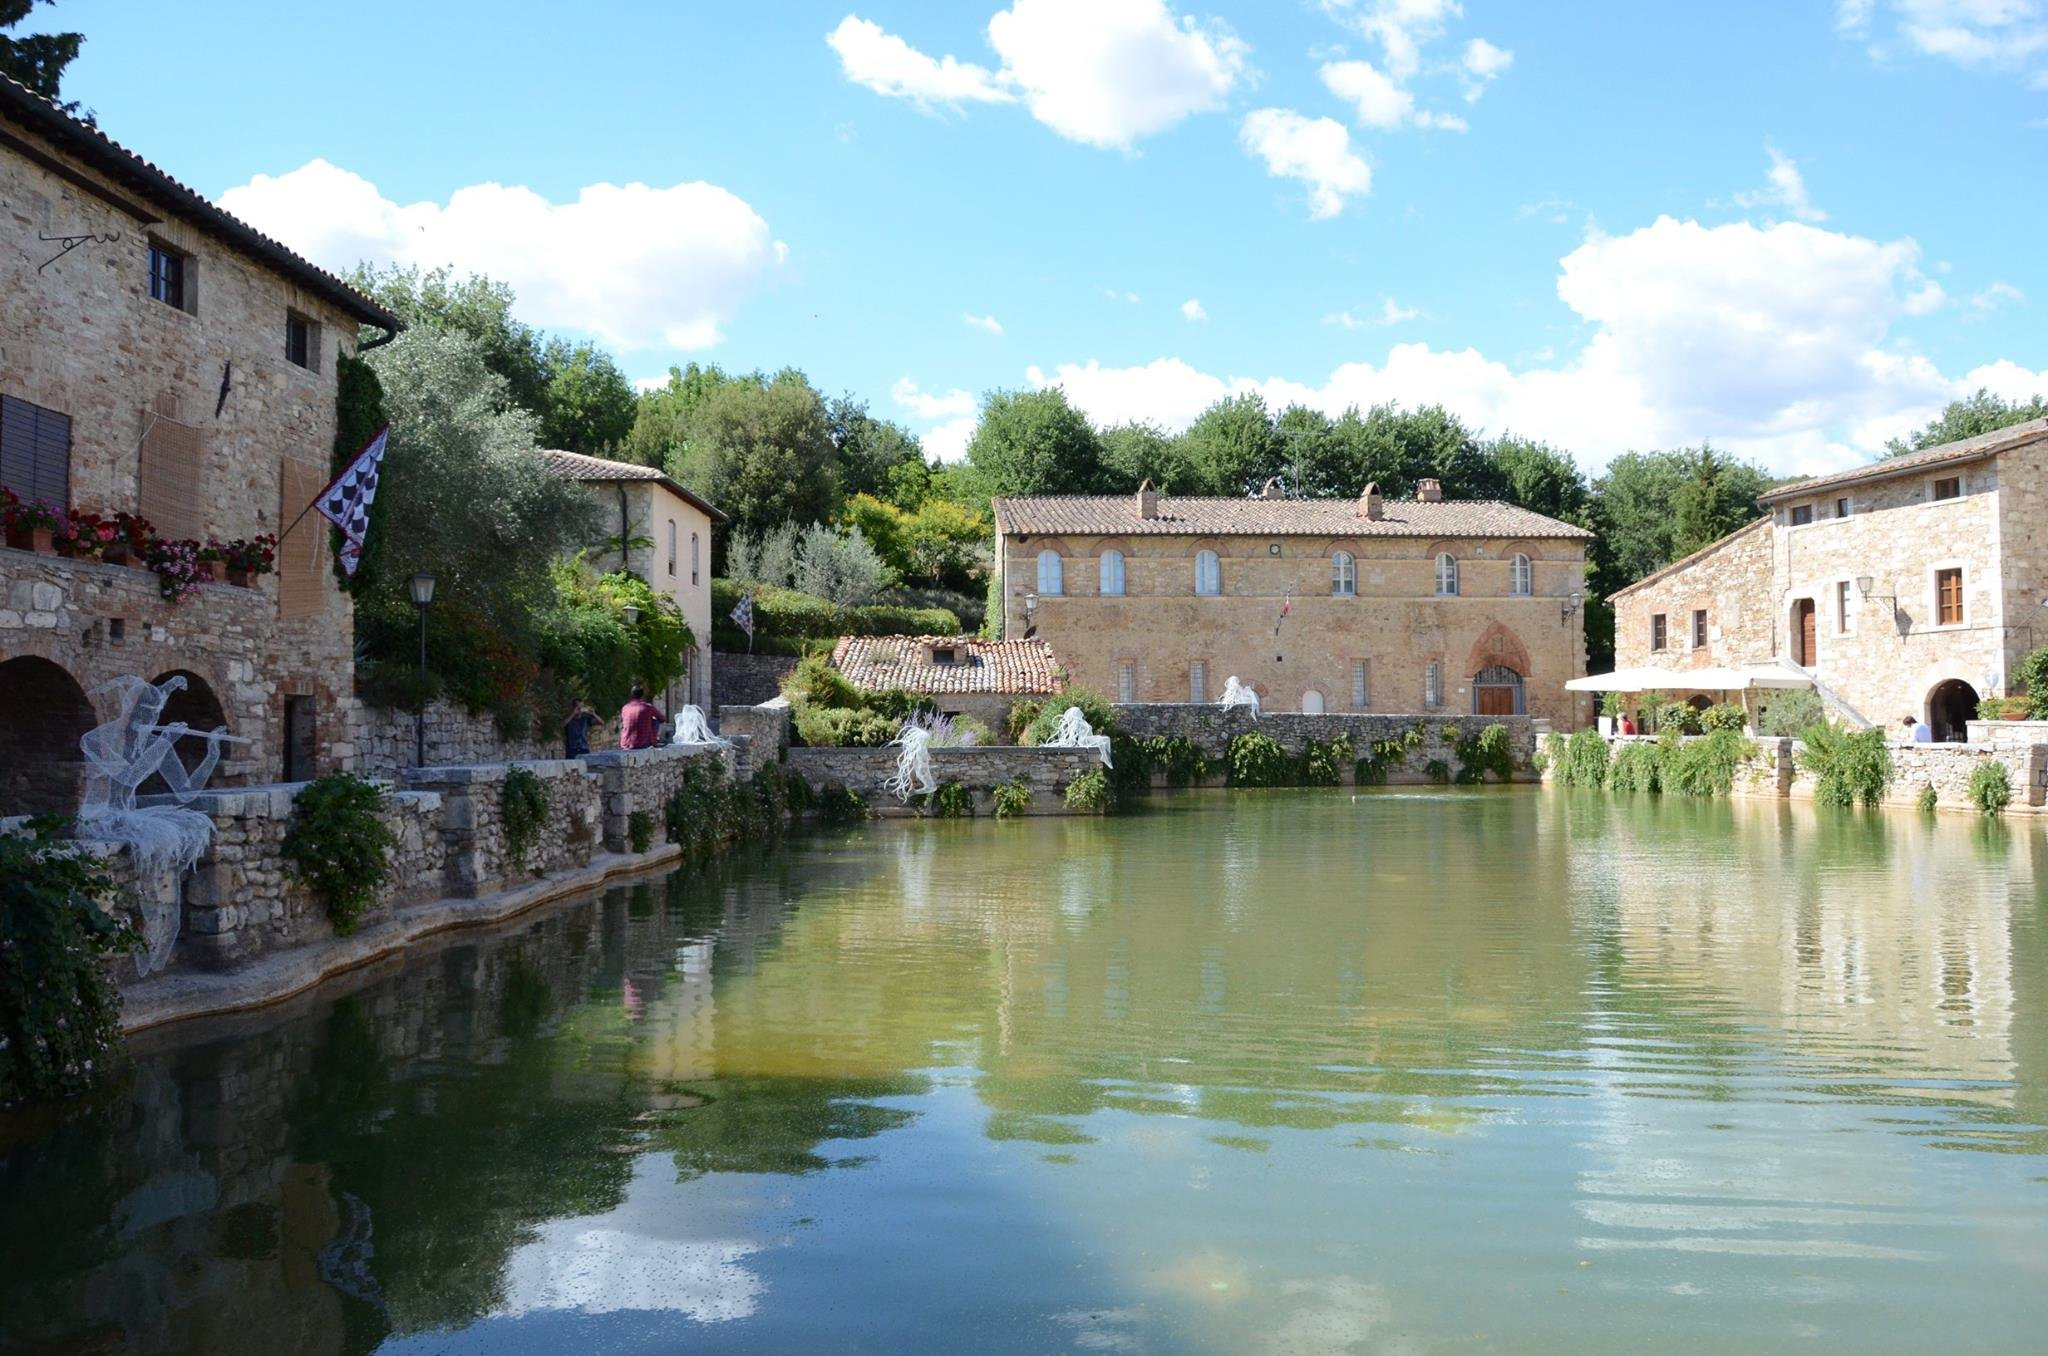 Bagno Vignoni Free Thermal Baths Thermal Spas Close To Paciano Villa Tartagli Bassi Holidays In